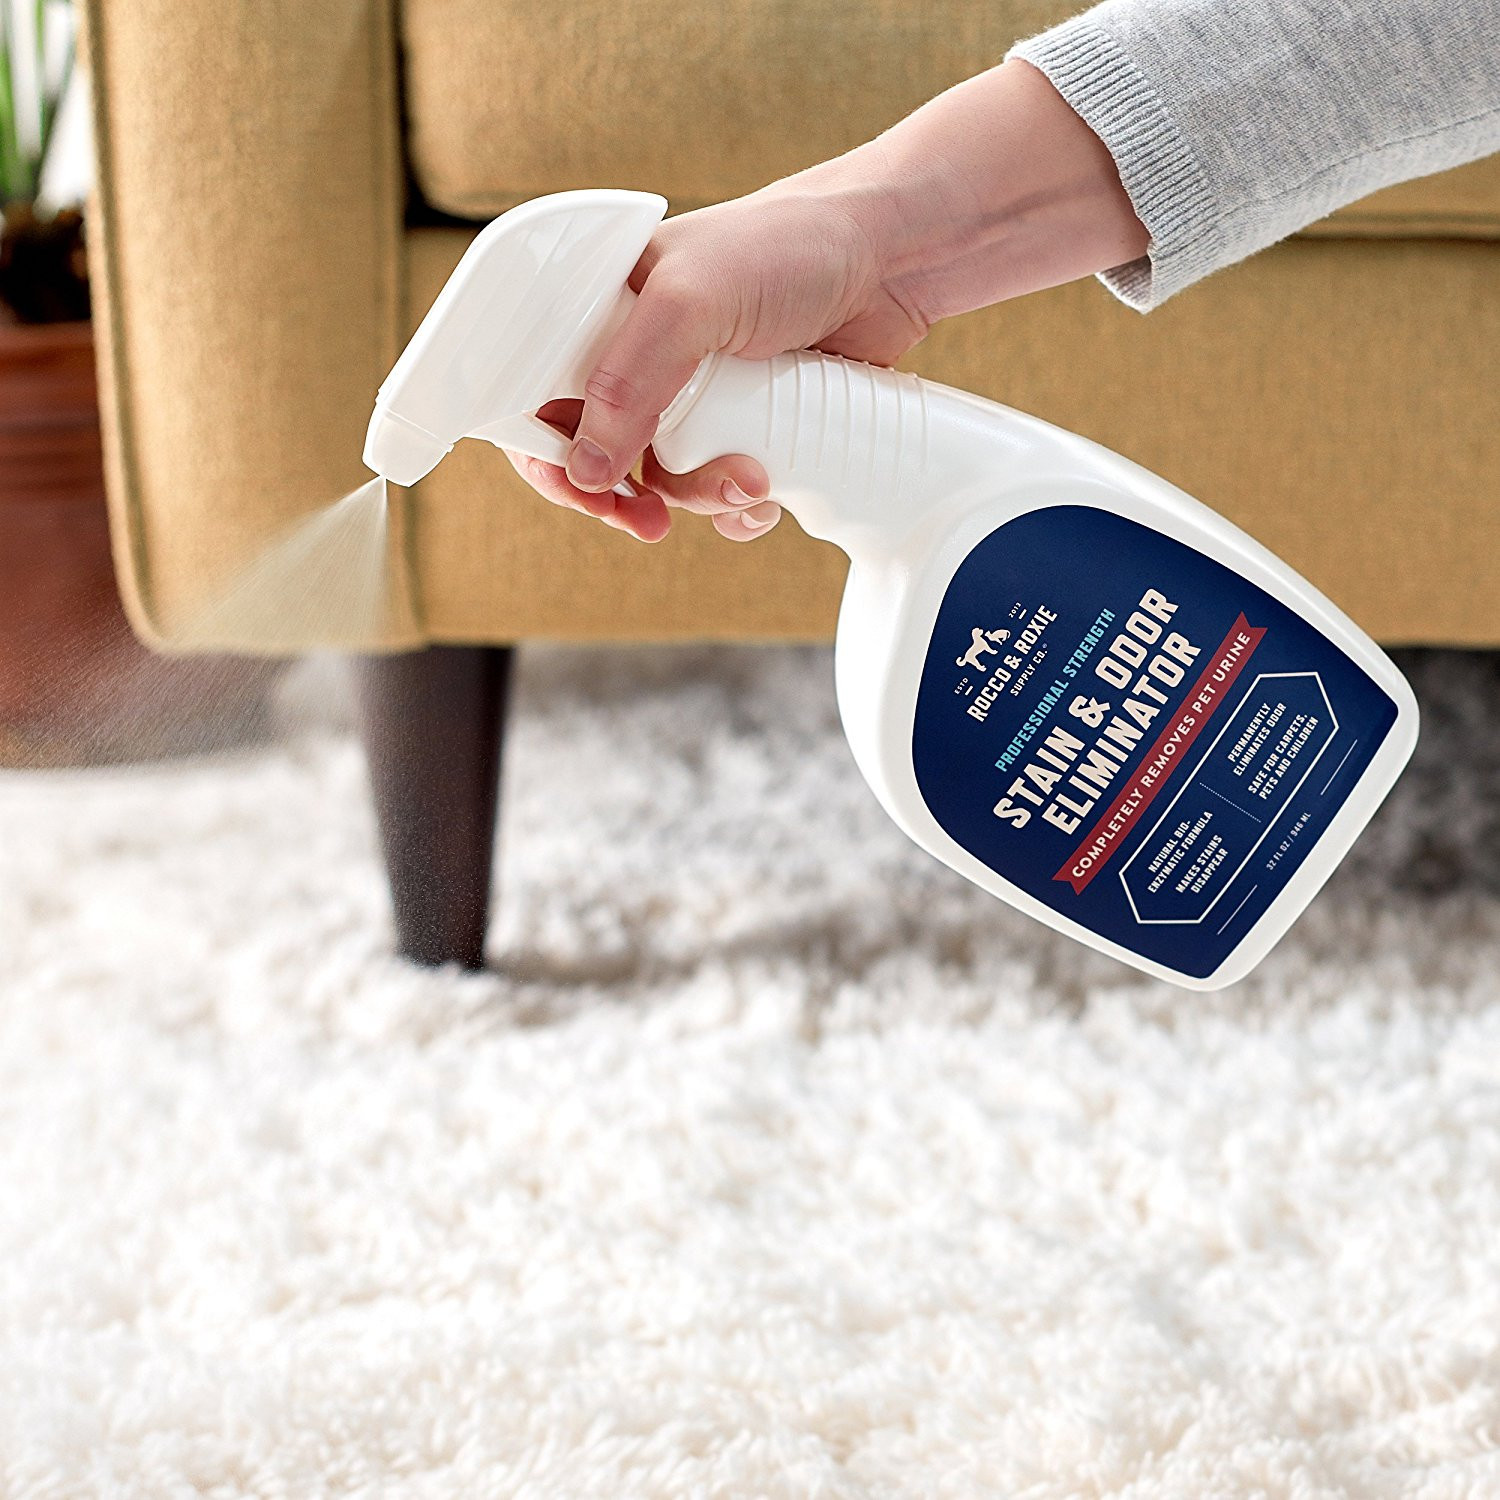 hardwood floor in bathroom smells like urine of amazon com rocco roxie supply co professional strength stain for amazon com rocco roxie supply co professional strength stain odor eliminator enzyme powered pet odor stain remover for dogs and cat urine spot